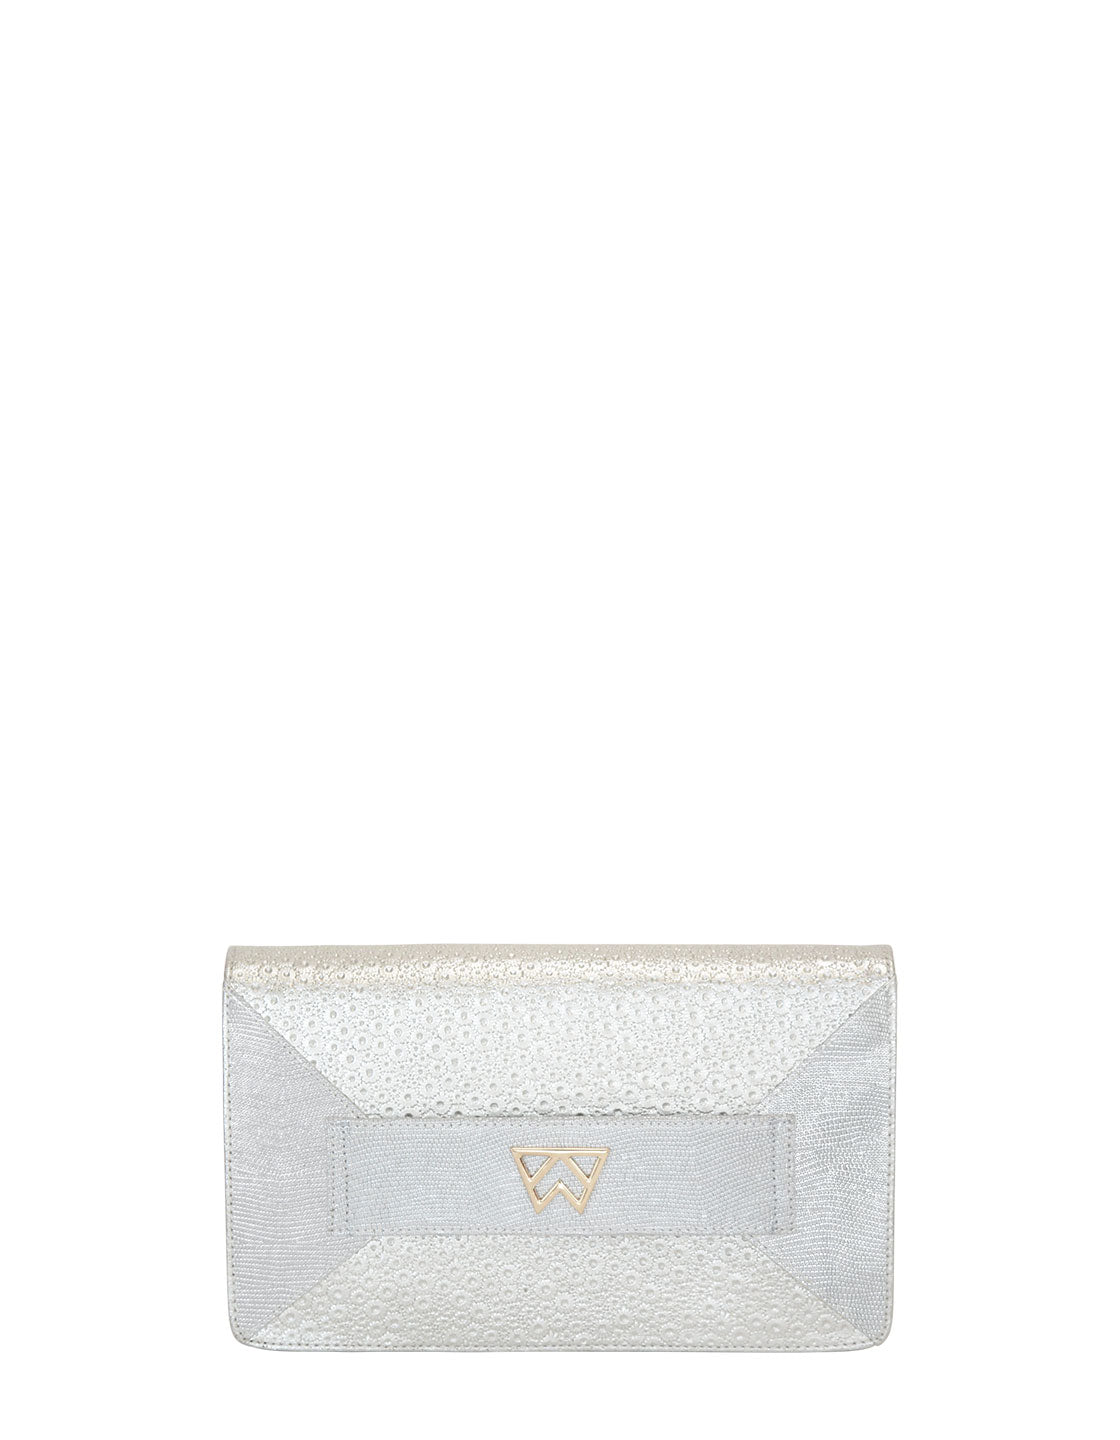 Forever Classy Clutch in Fine and Dandelion